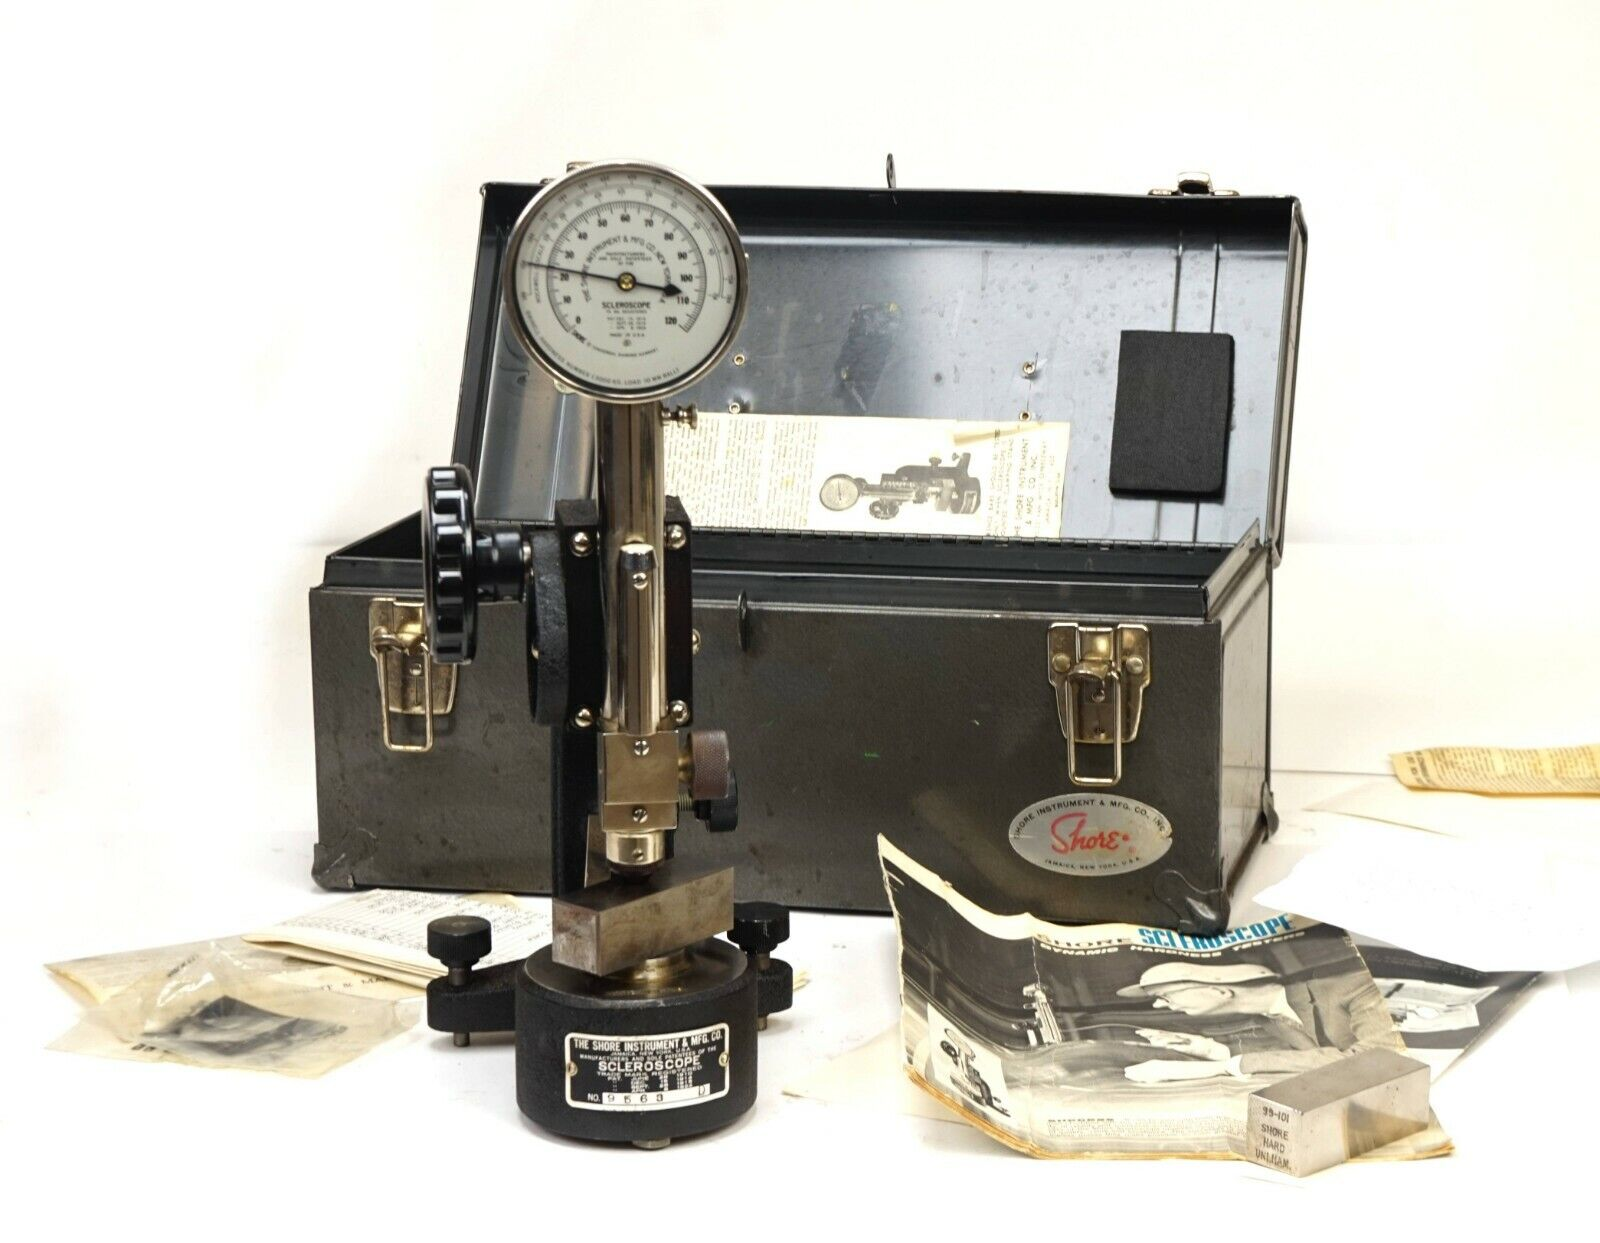 Shore D Scleroscope